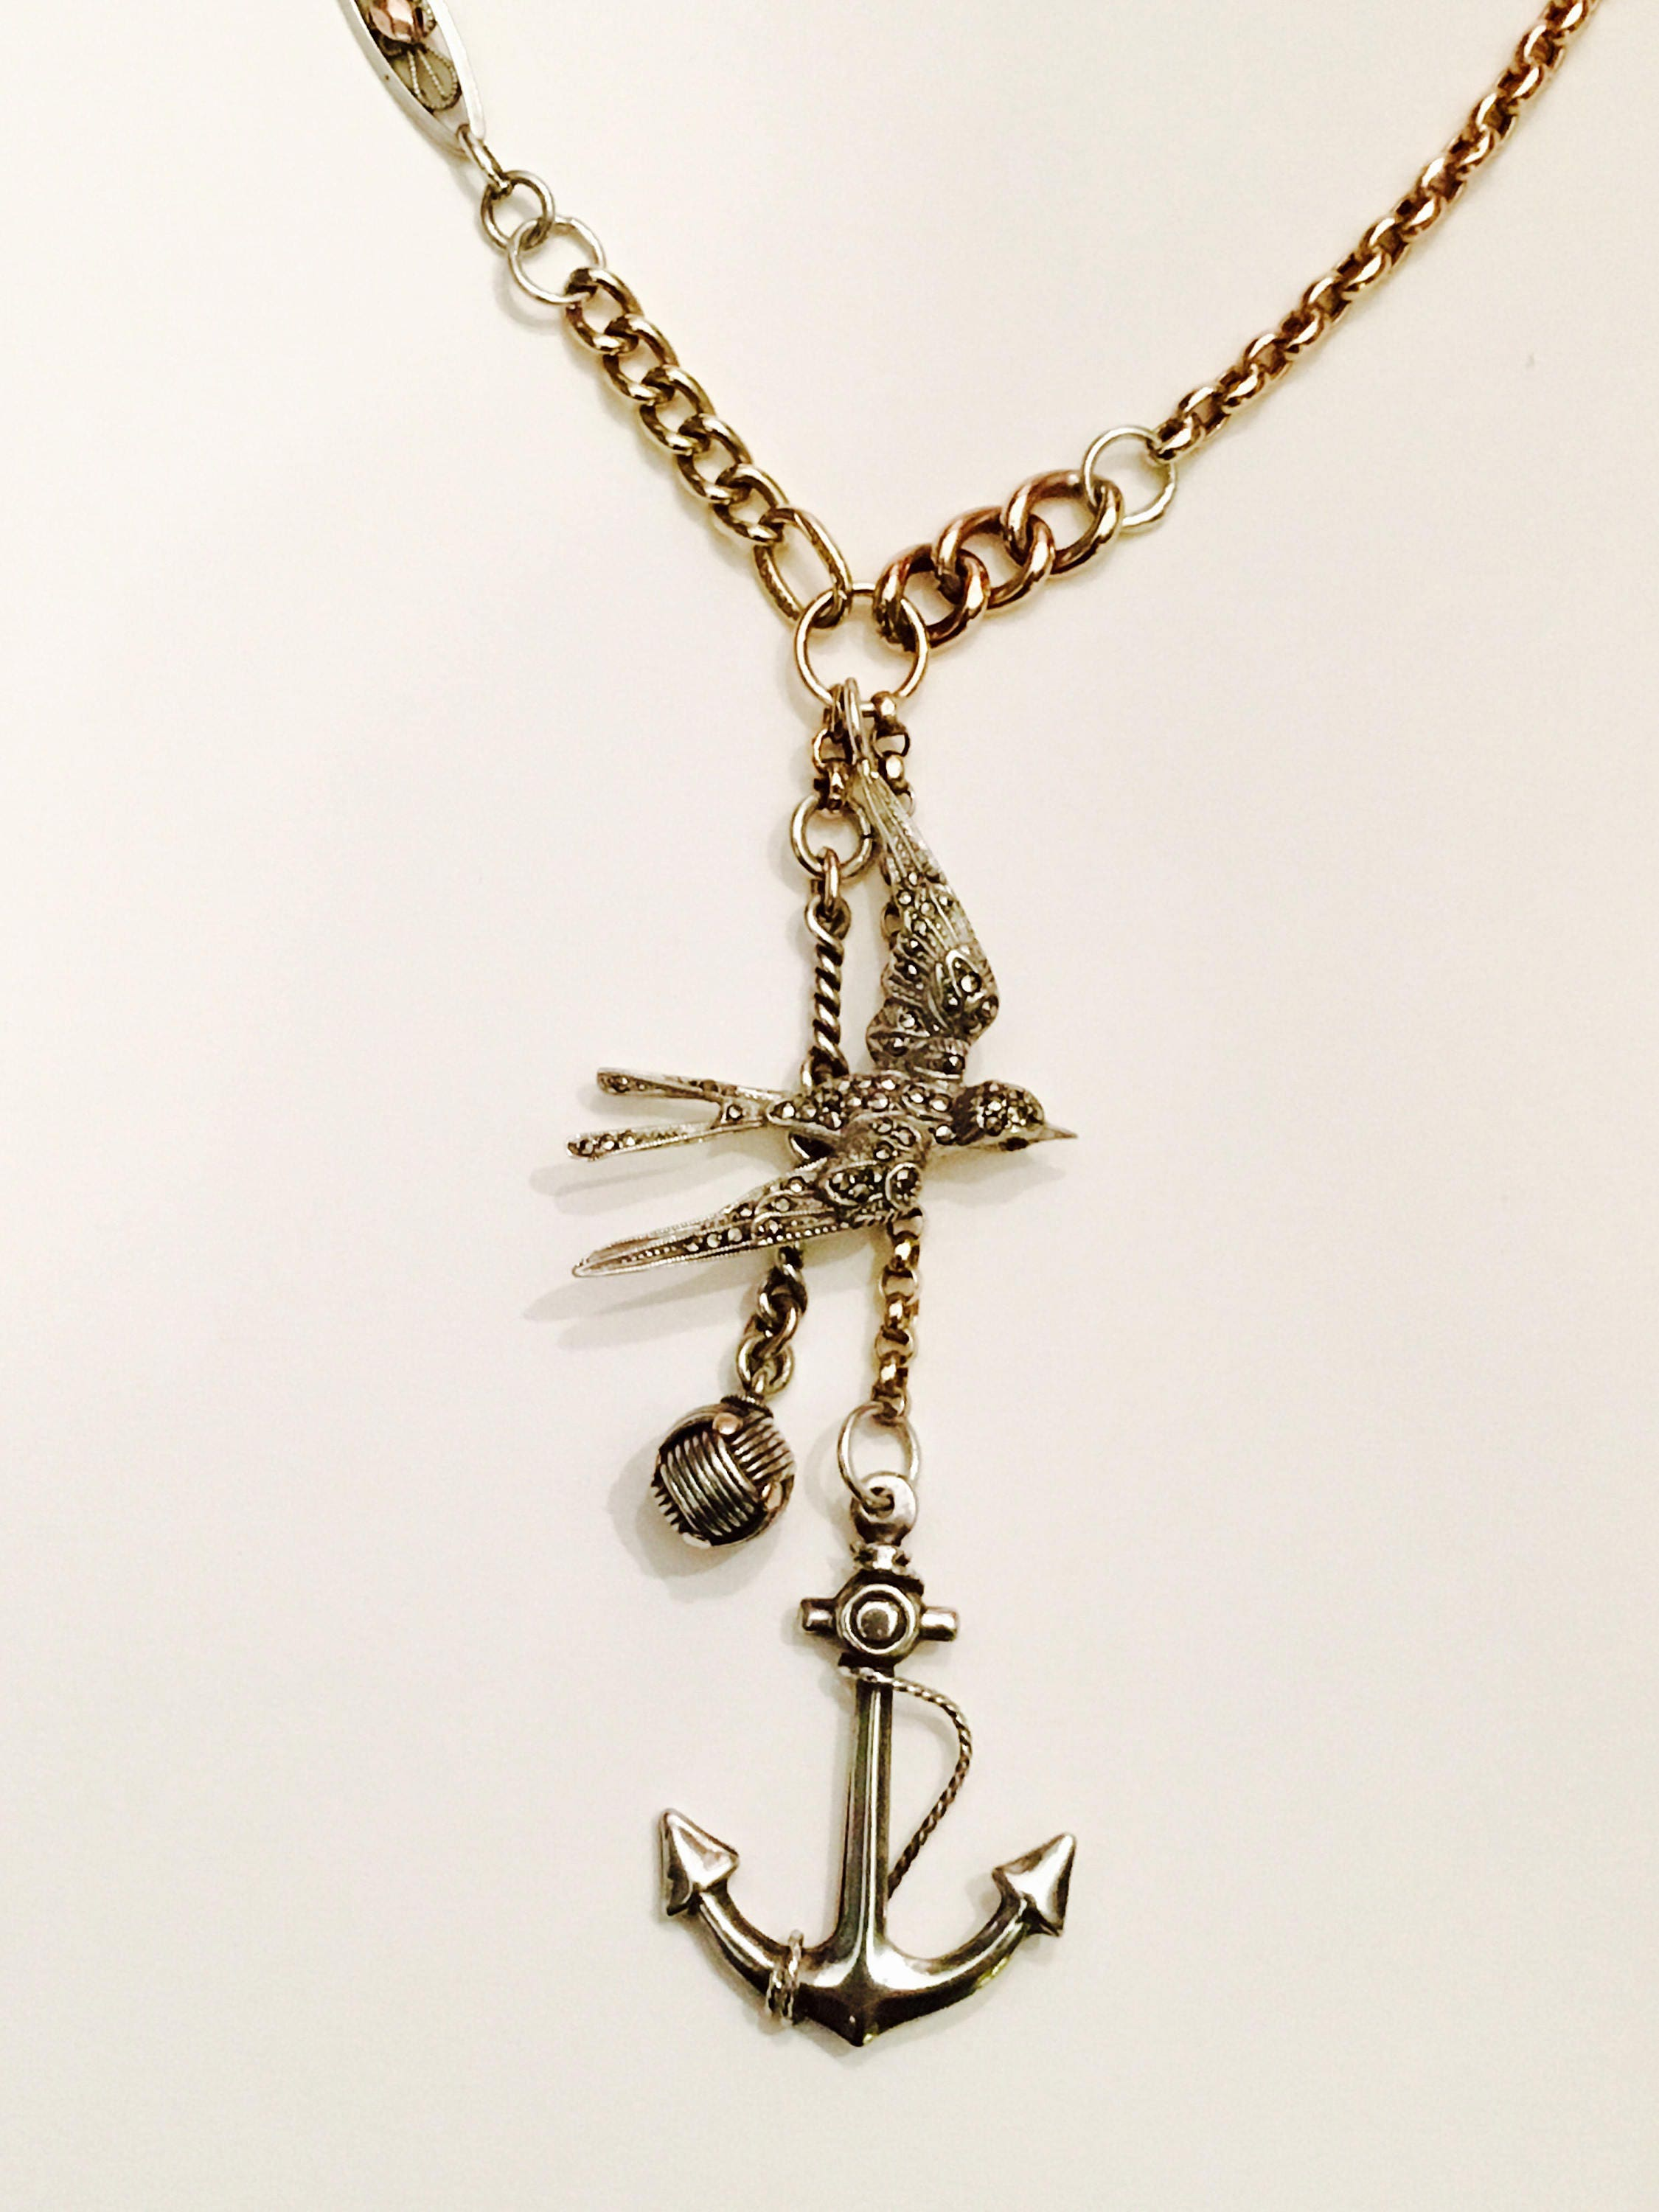 Vintage Silver and 9ct Gold Multi Chain Links Swallow Anchor Charm Necklace